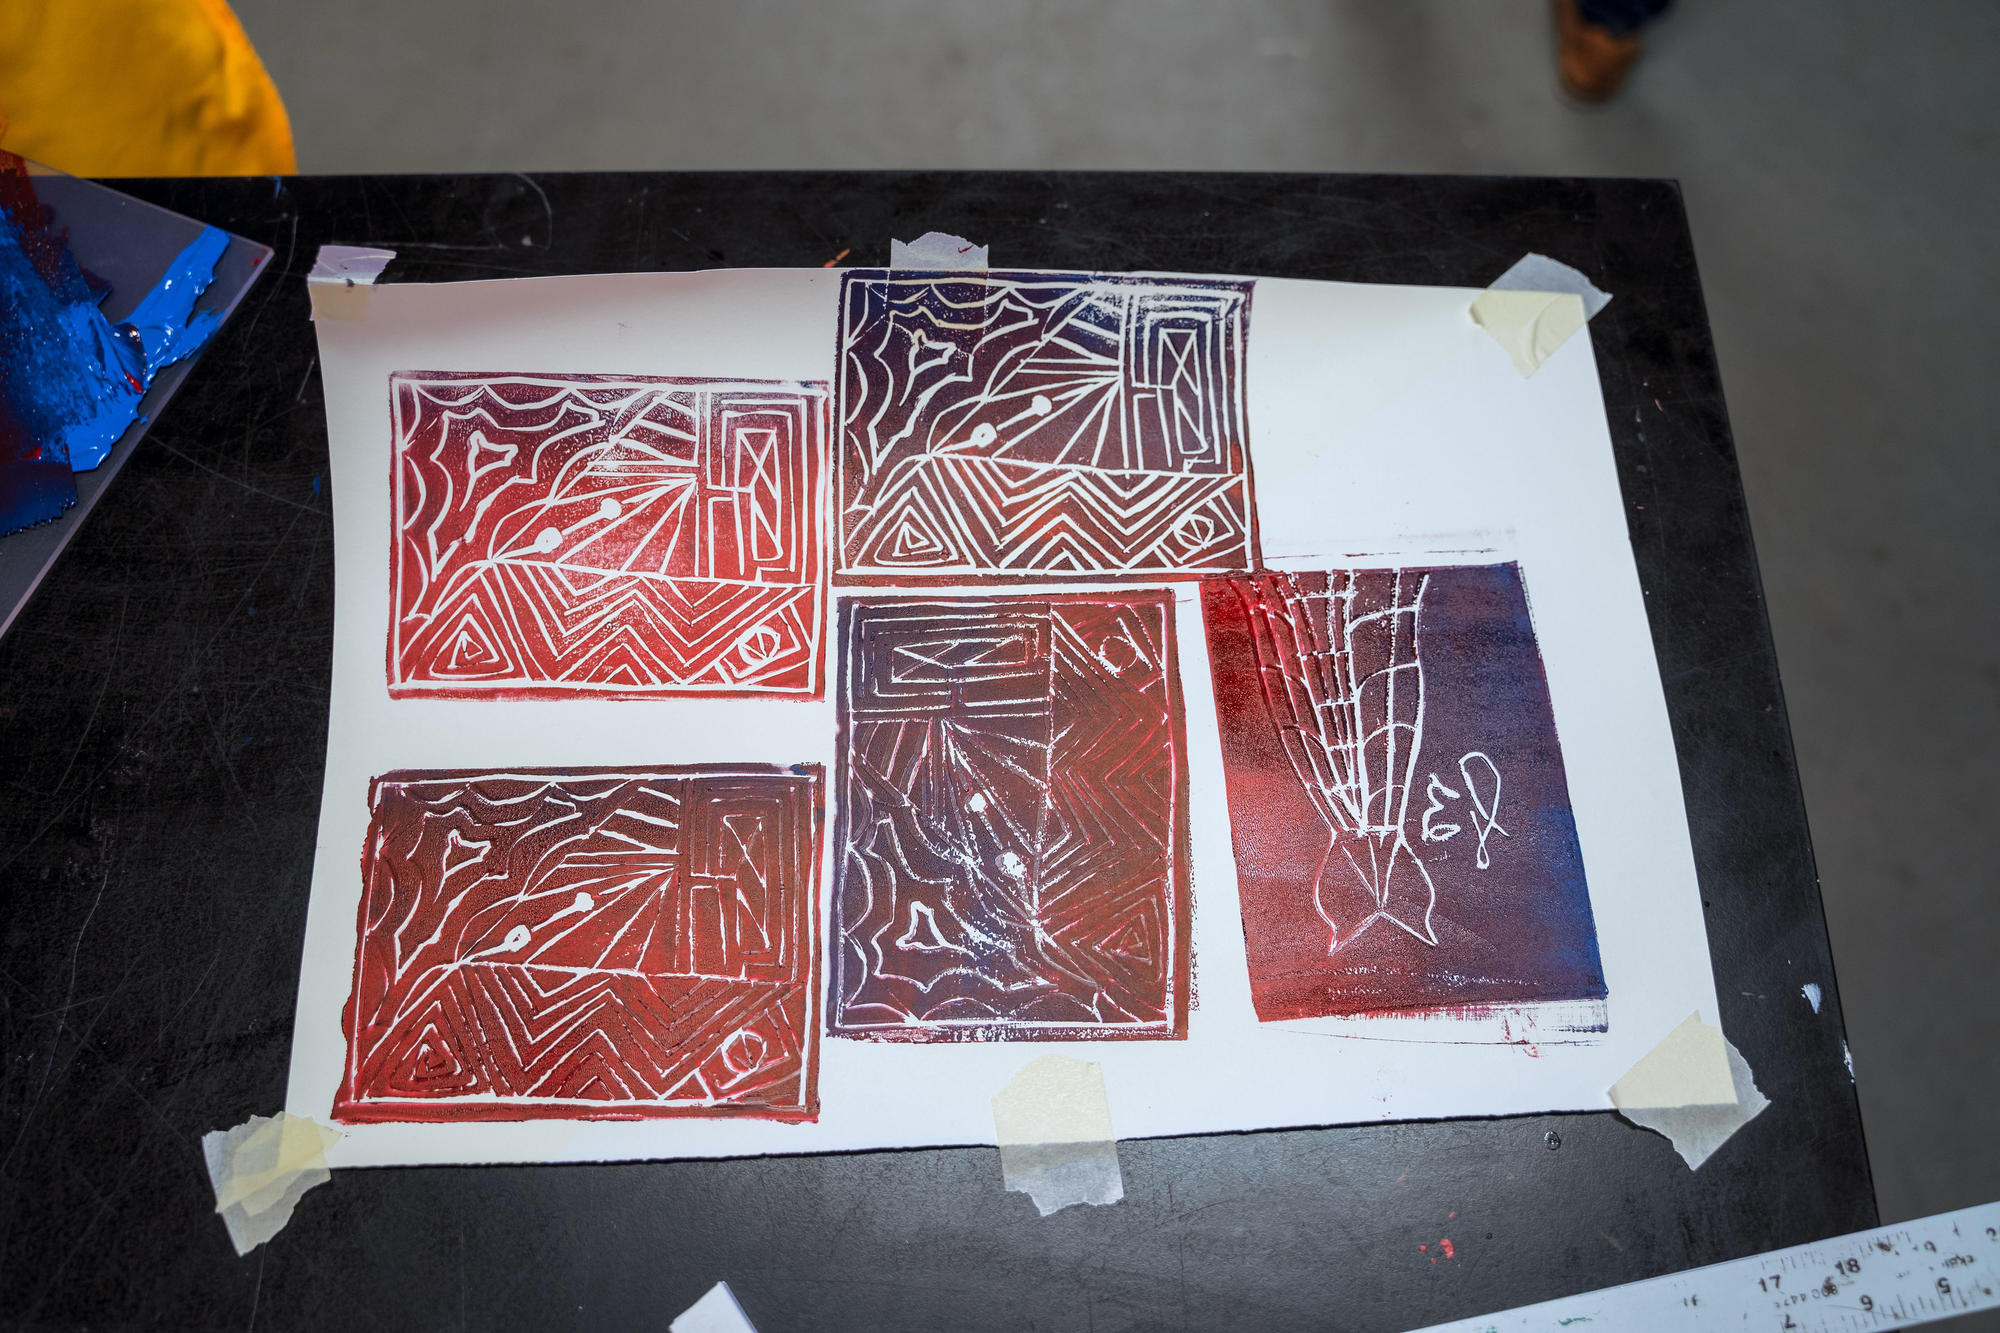 Some finished linoleum tiles, ready for print-making. Photo by Faizal Westcott, June 2019.